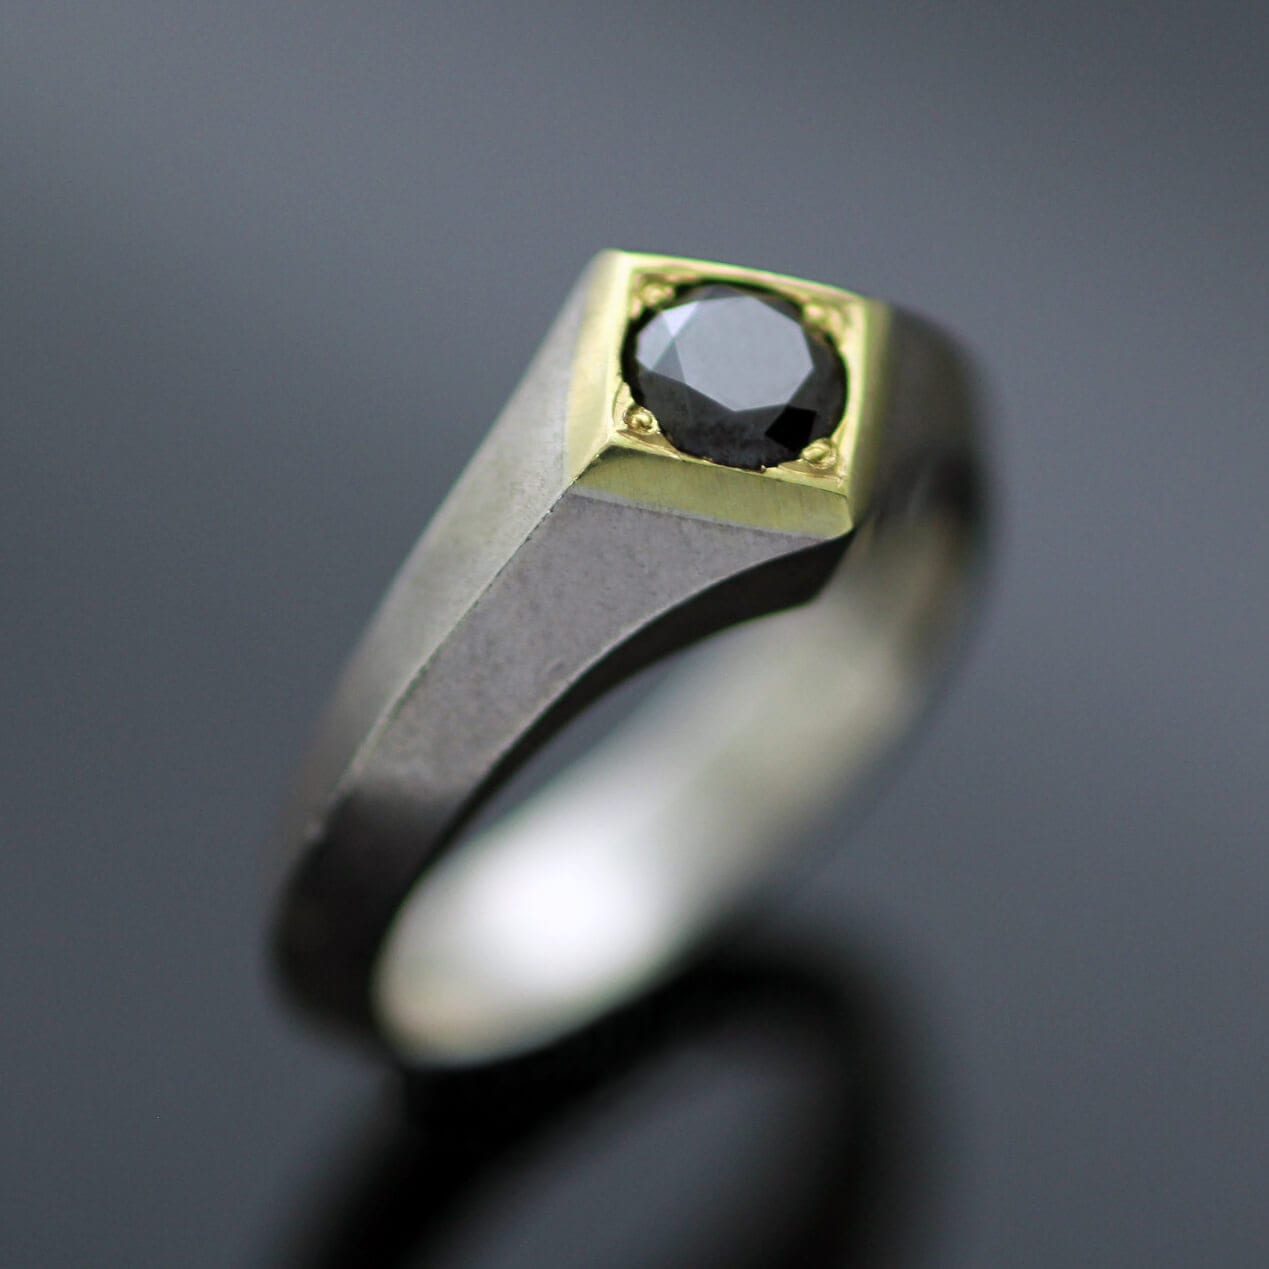 Round Brilliant Black Diamond set in 18ct Yellow Gold on sleek modern Silver handmade ring shank